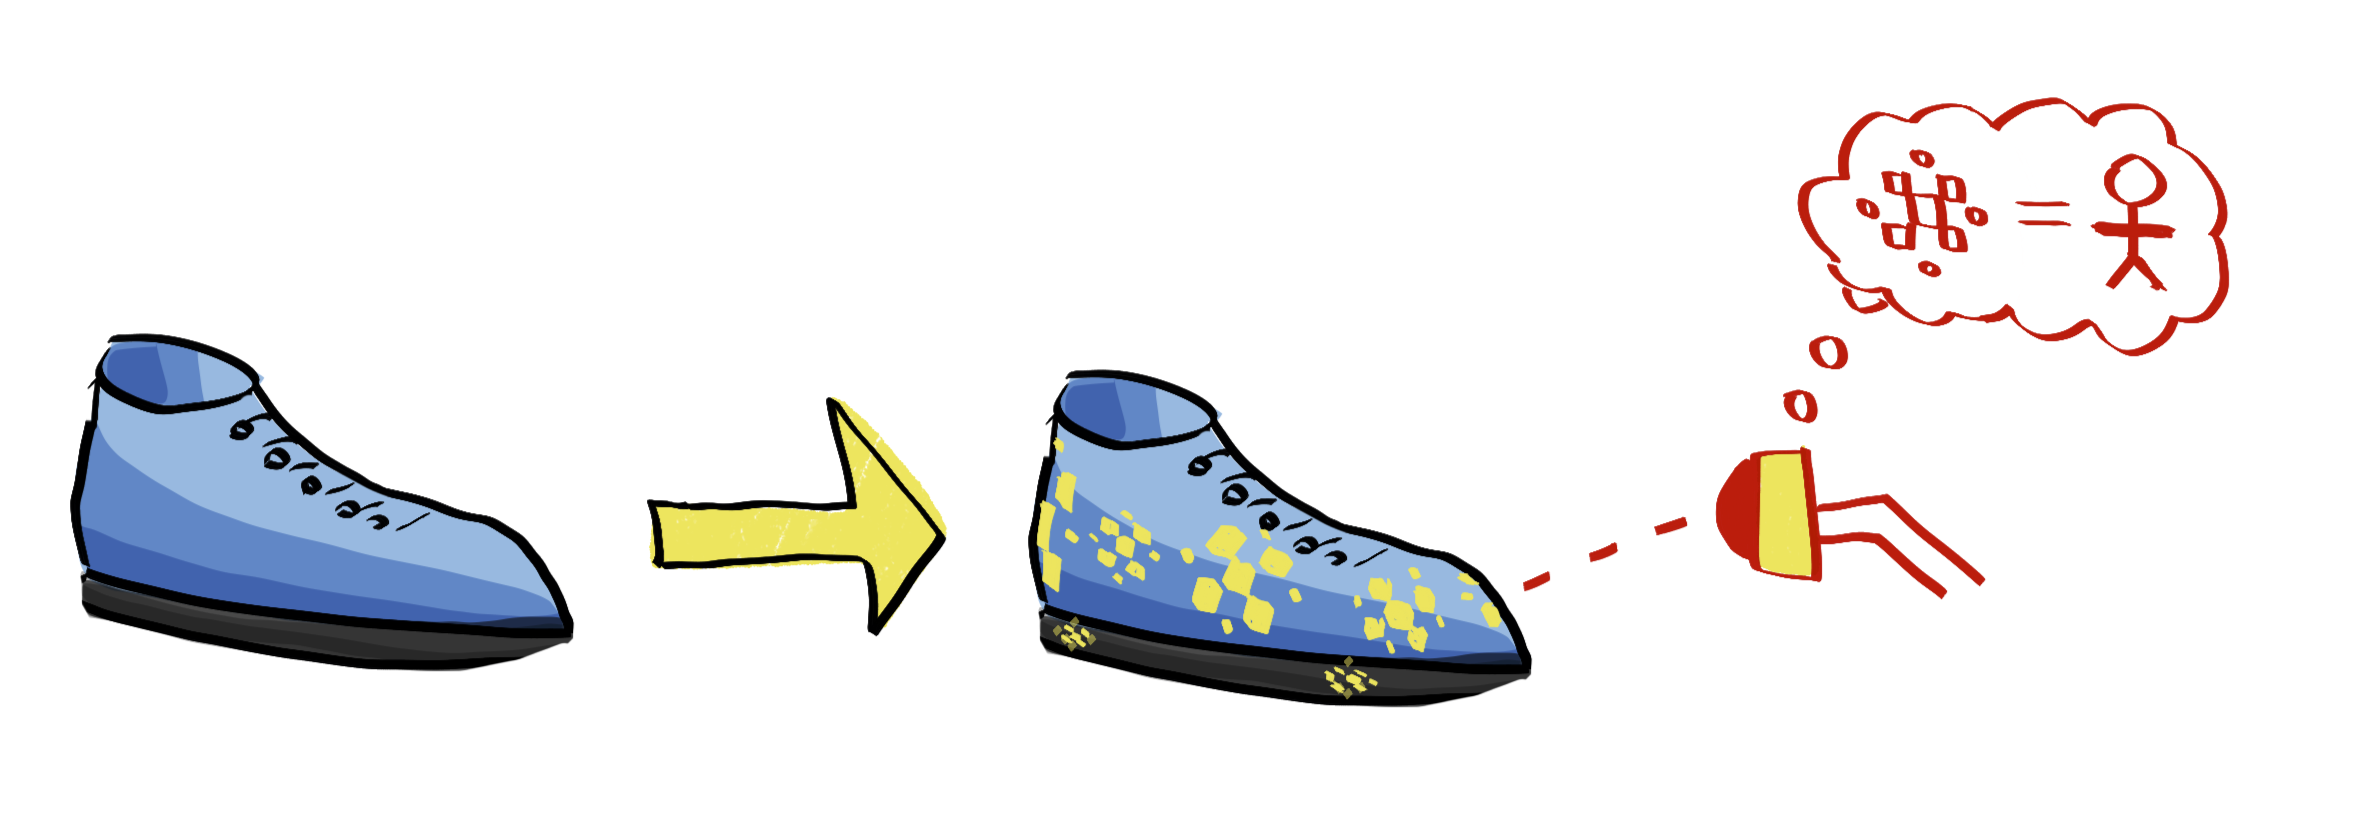 3-shoes-with-markings.png